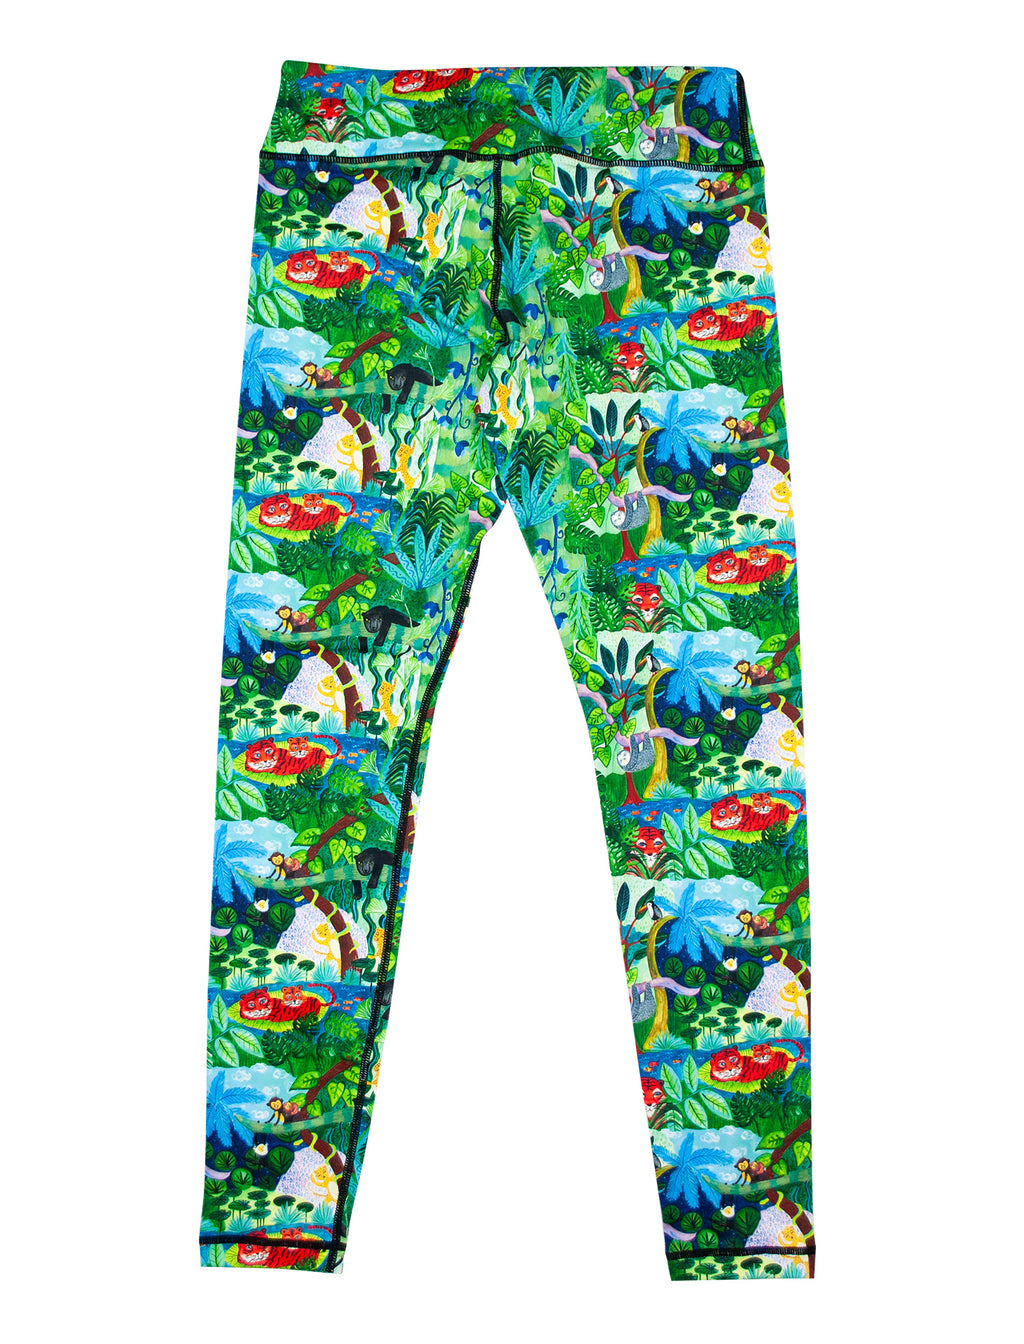 In The Jungle Full Length Classic Leggings